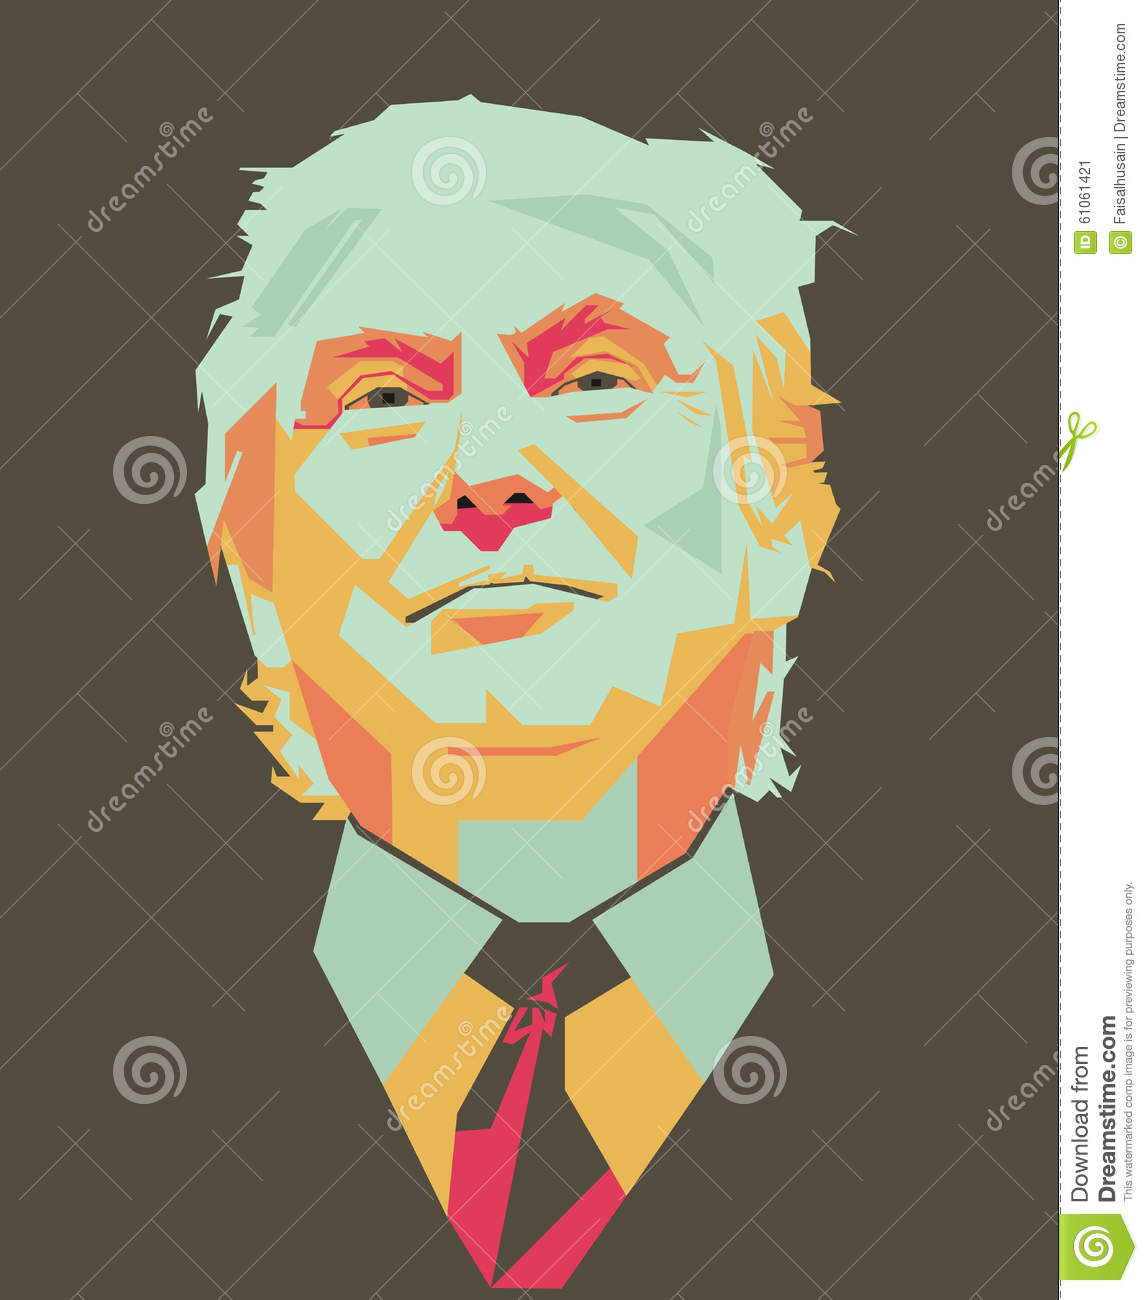 Donald Trump Vector Editorial Photo - Image: 61061421